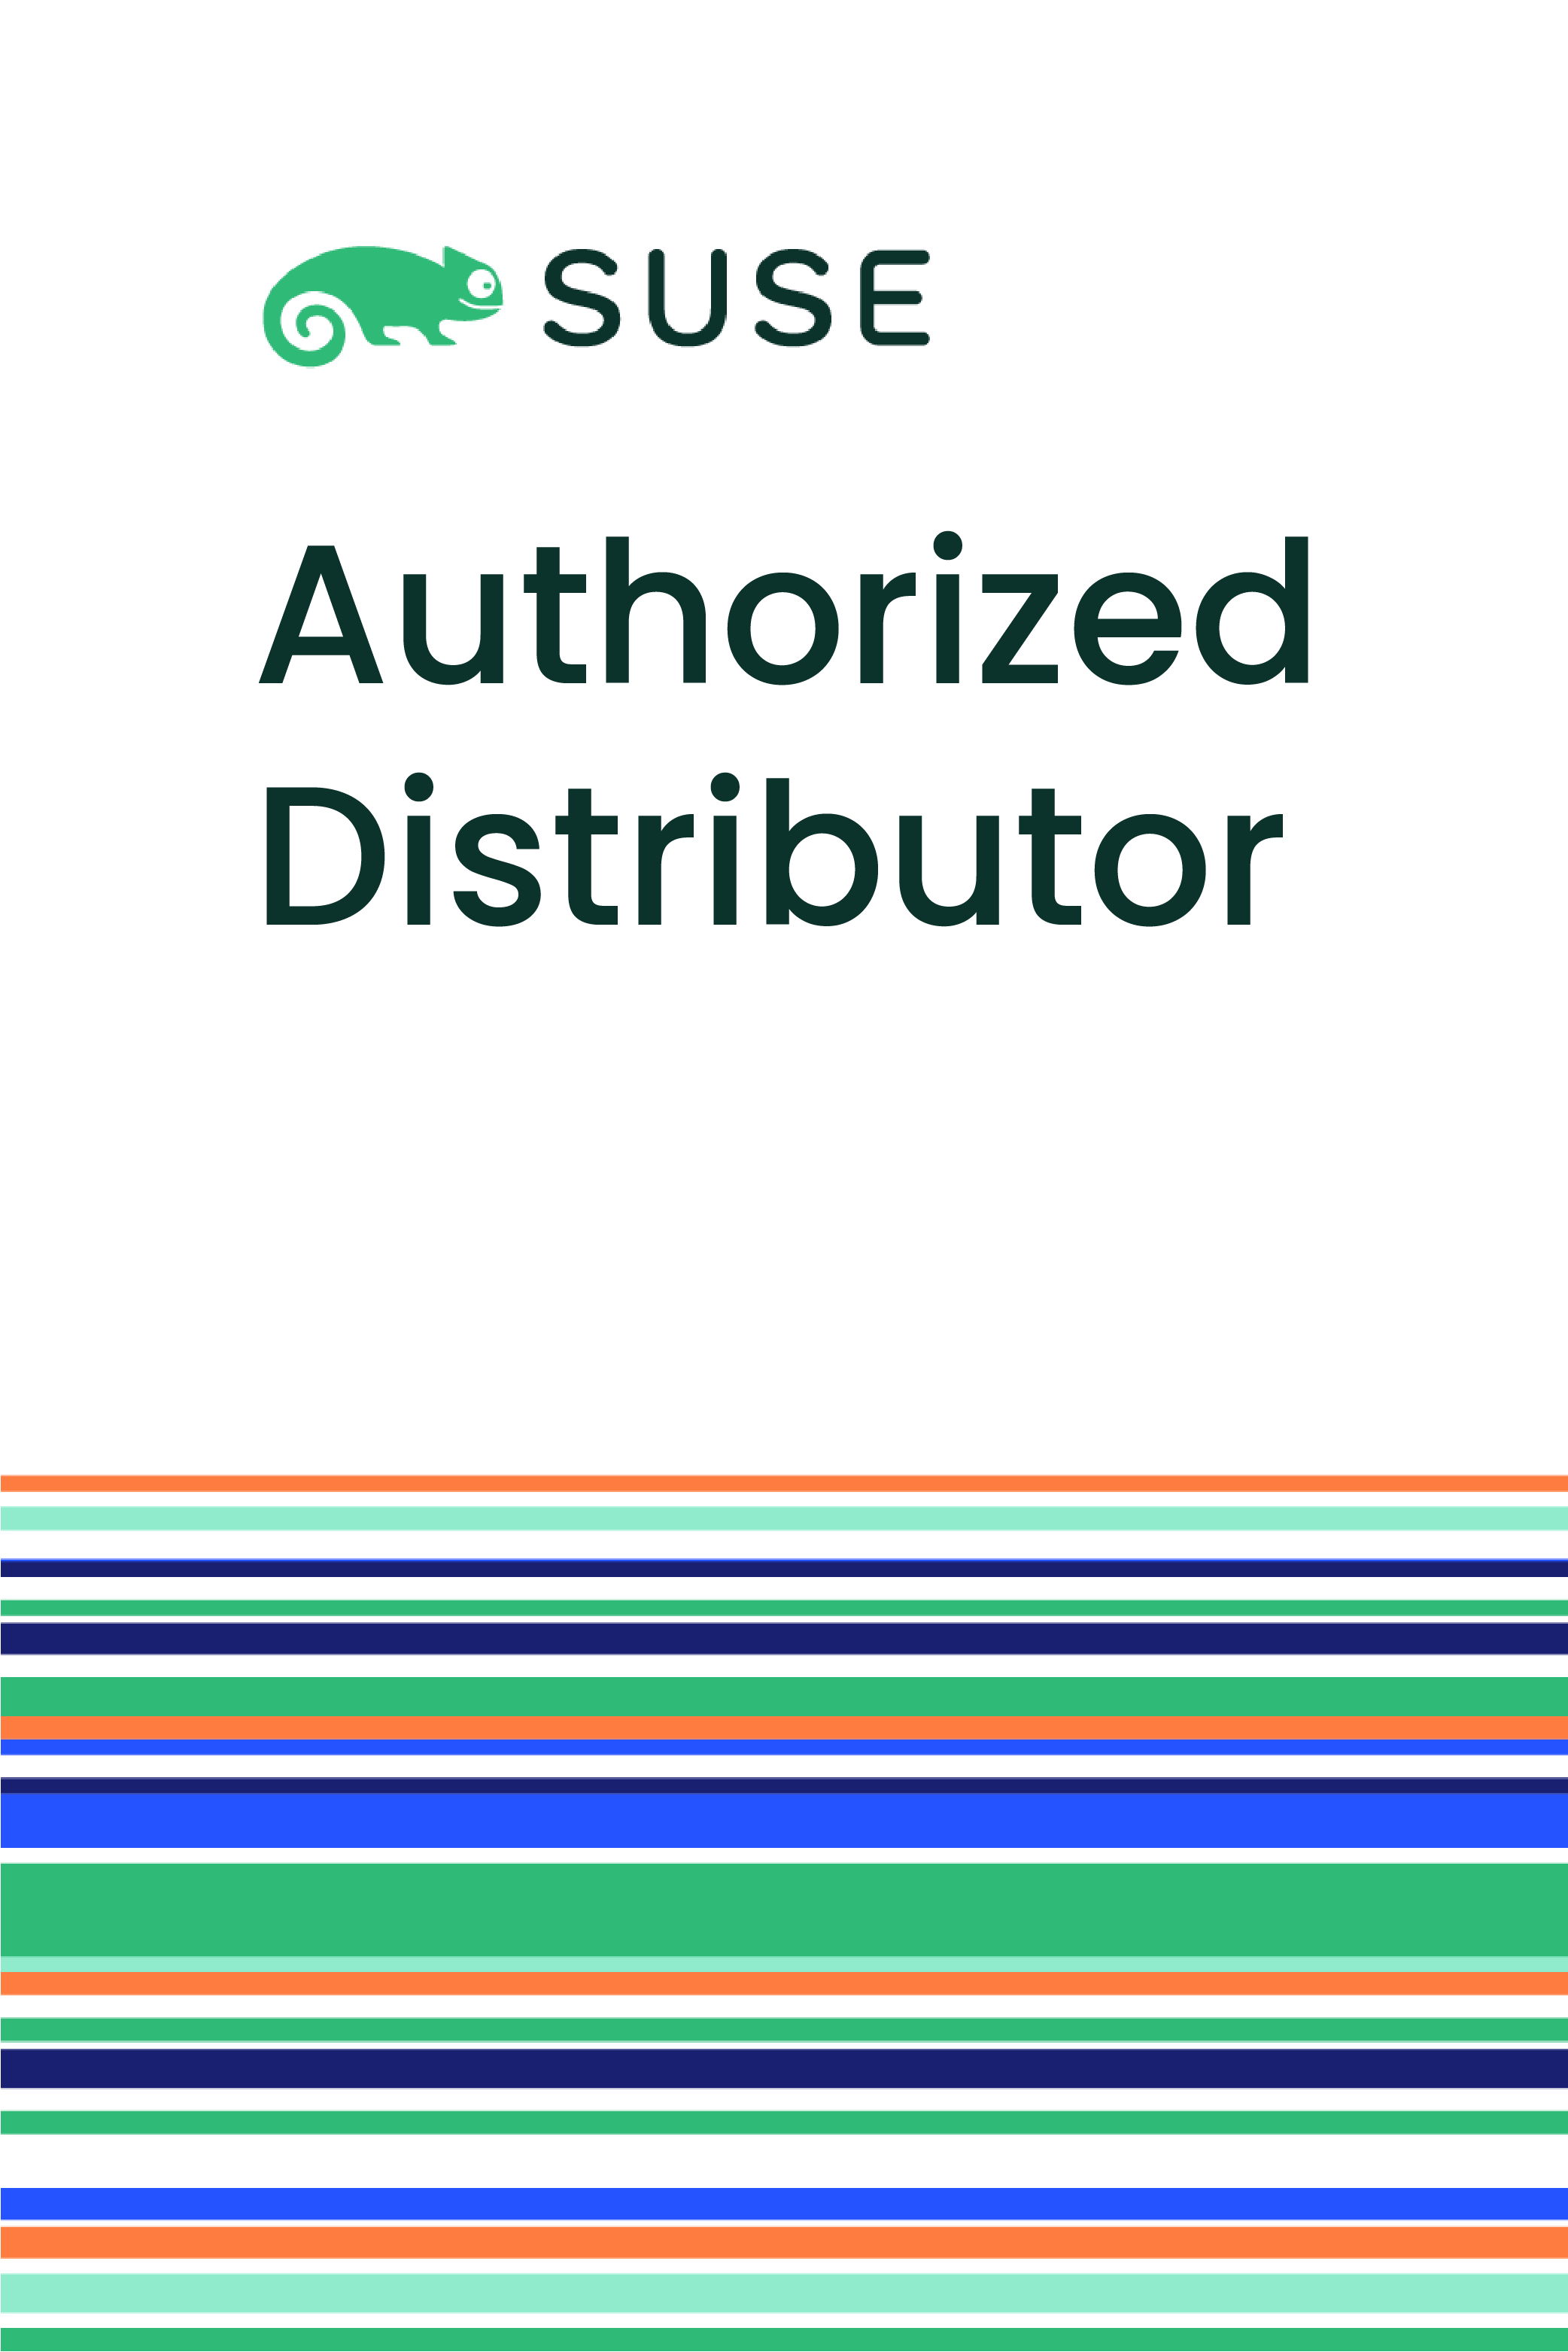 SUSE Authorized Distributor